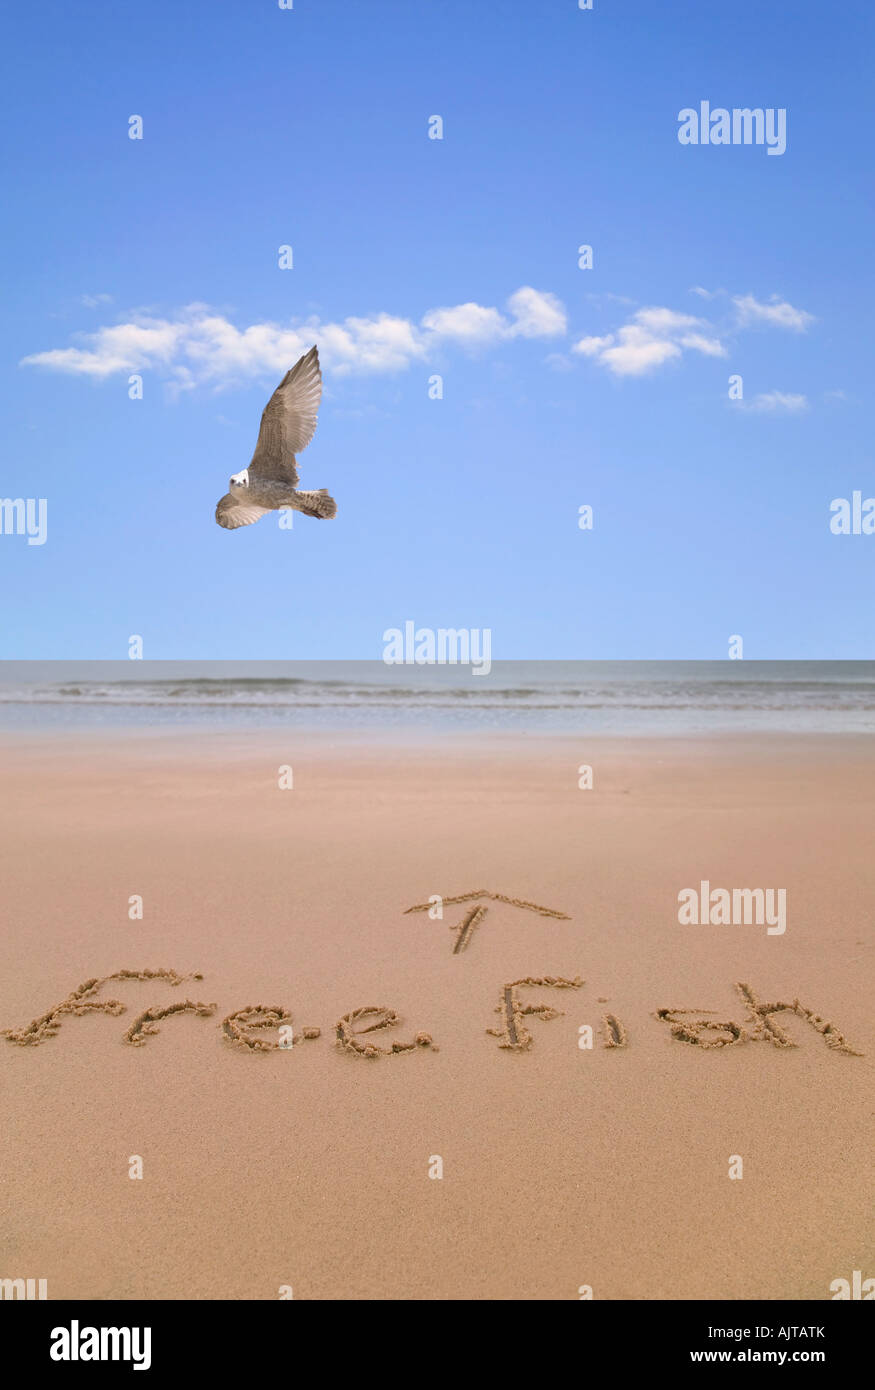 Free fish written in sand at the beach with a seagull flying past Stock Photo